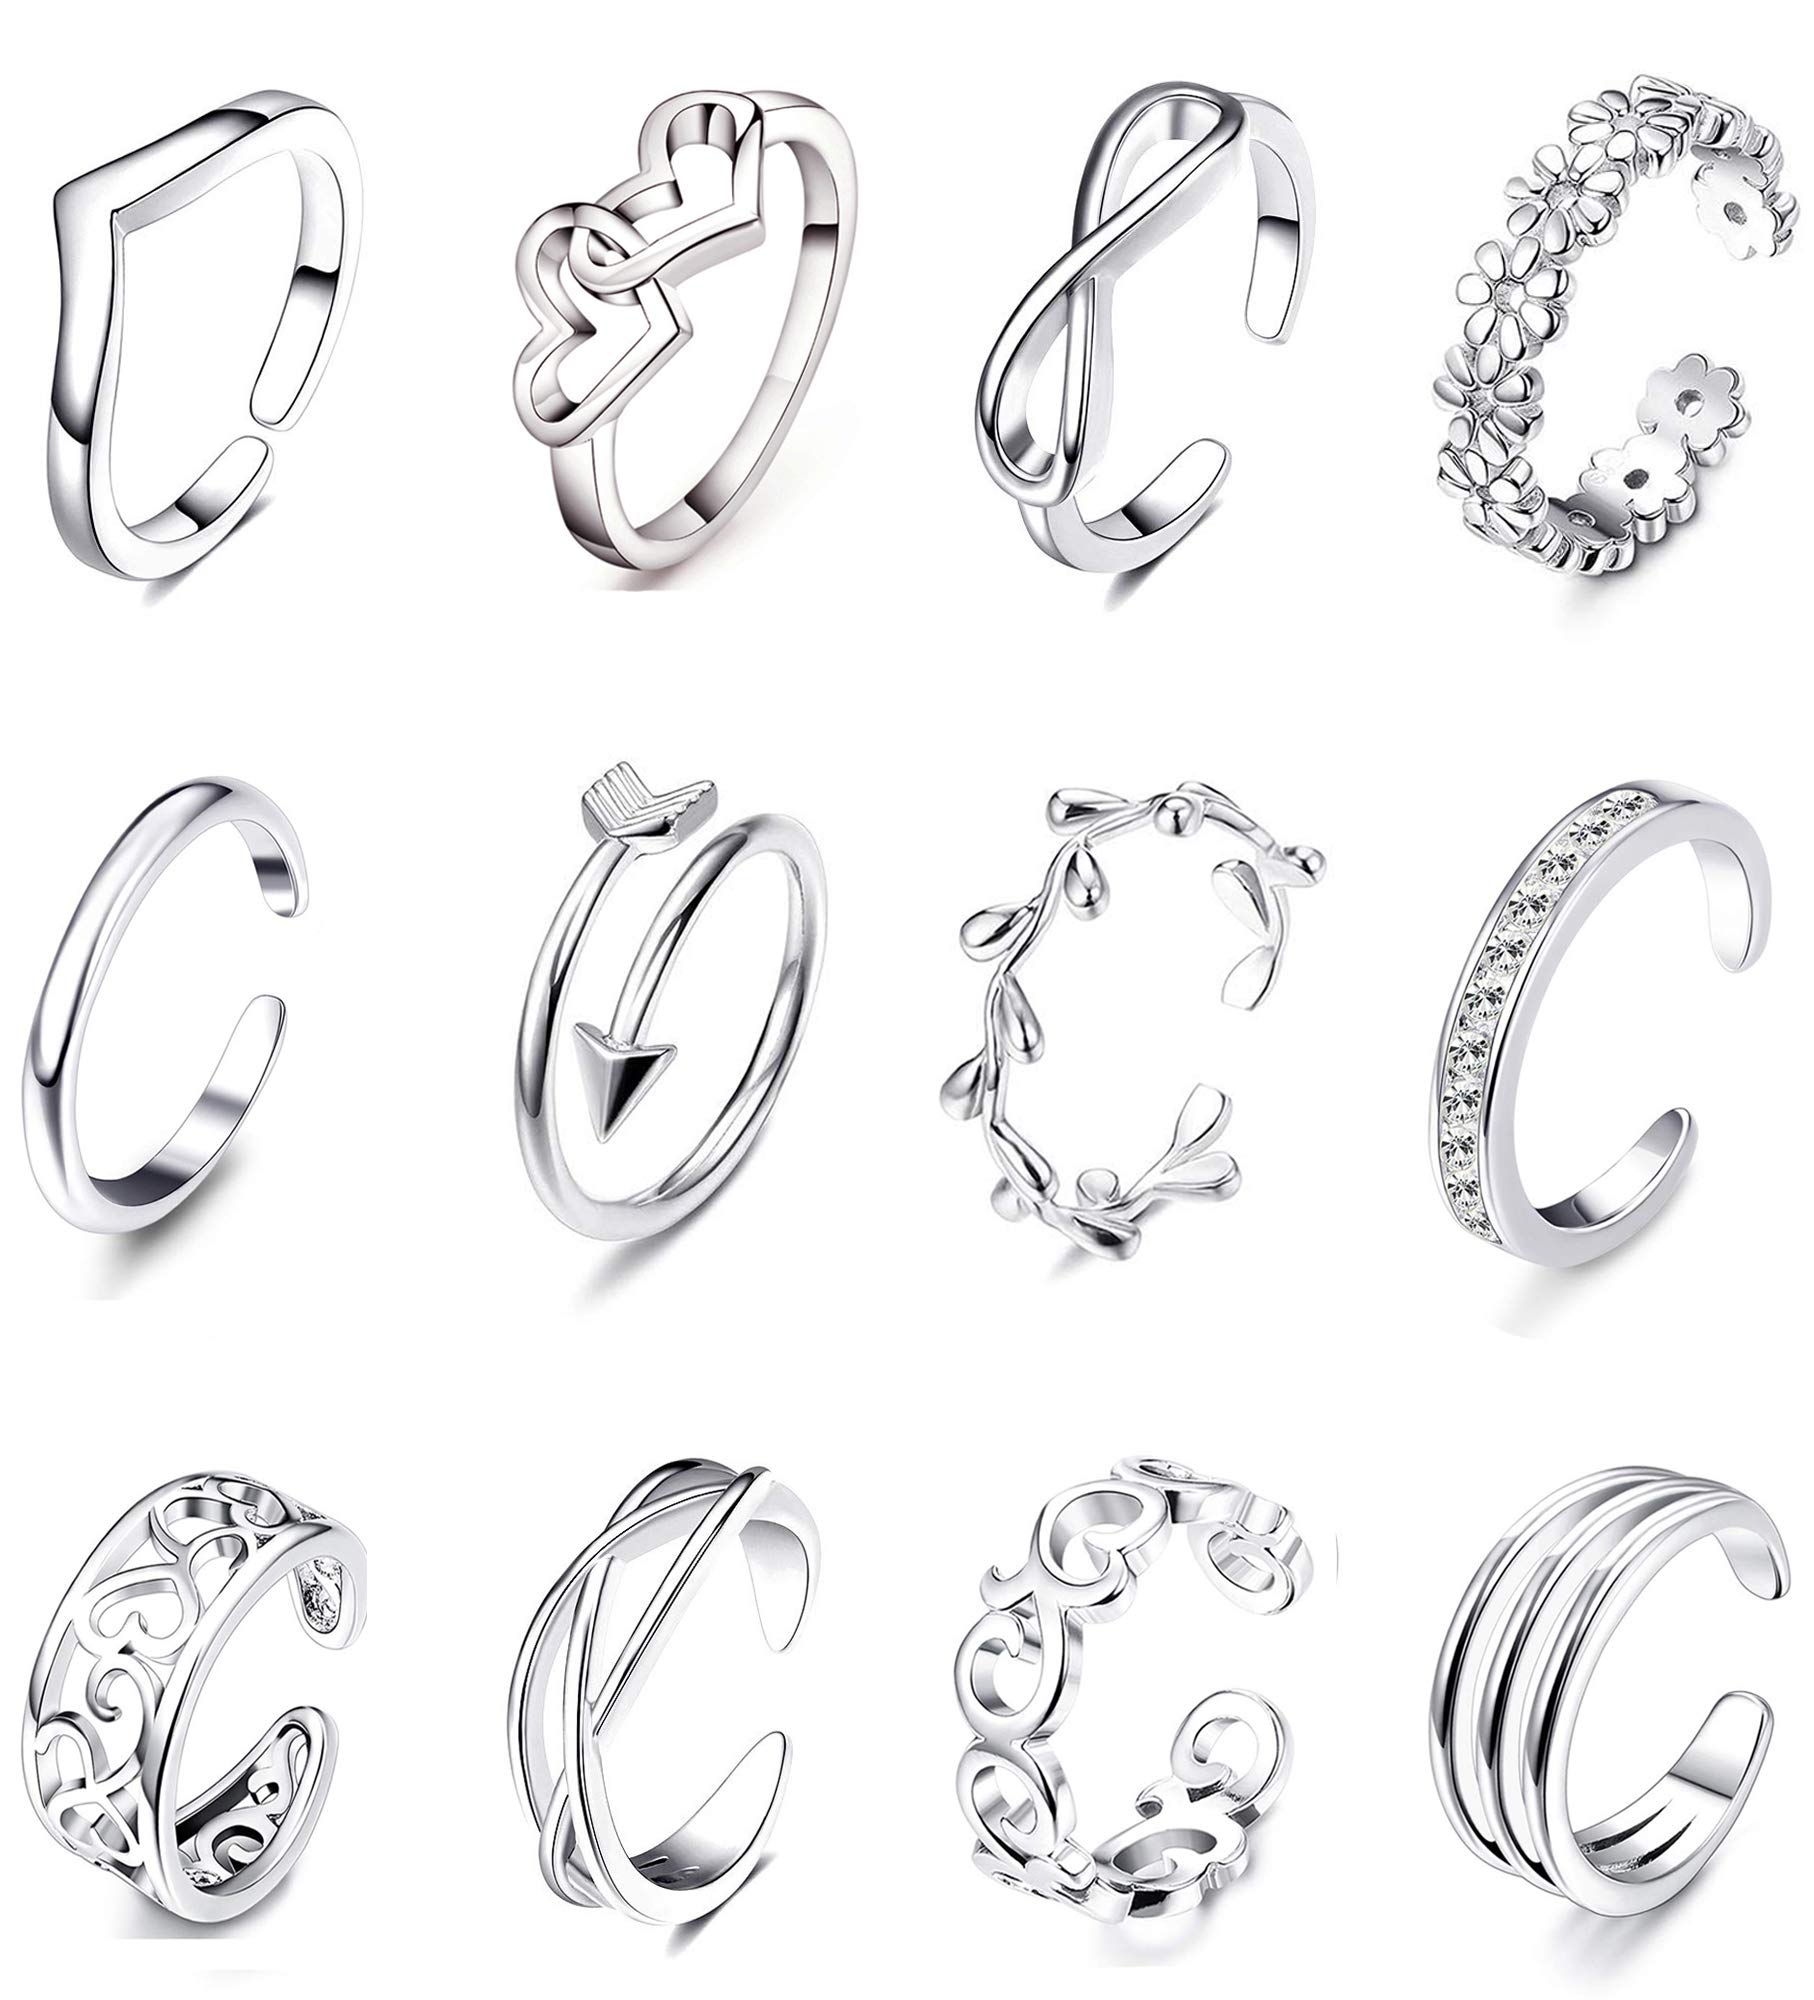 Adjustable Toe Rings for Women Summer Beach Rose Gold Silver Hypoallergenic Open Toe Ring Set Finger Foot Jewelry